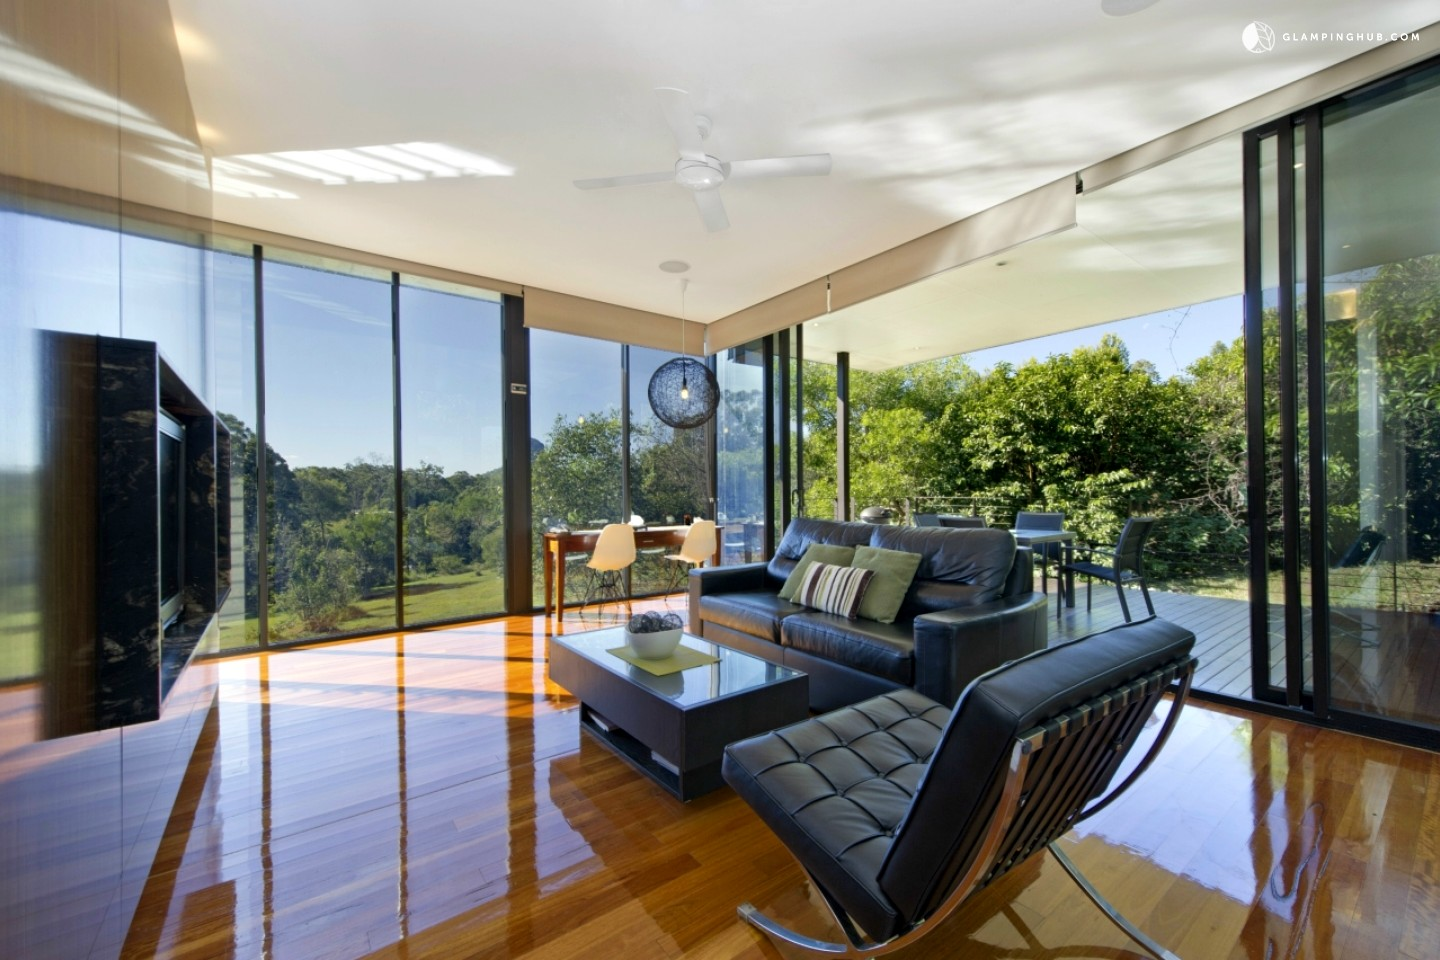 Cabin Rentals In Queensland On Sunshine Coast